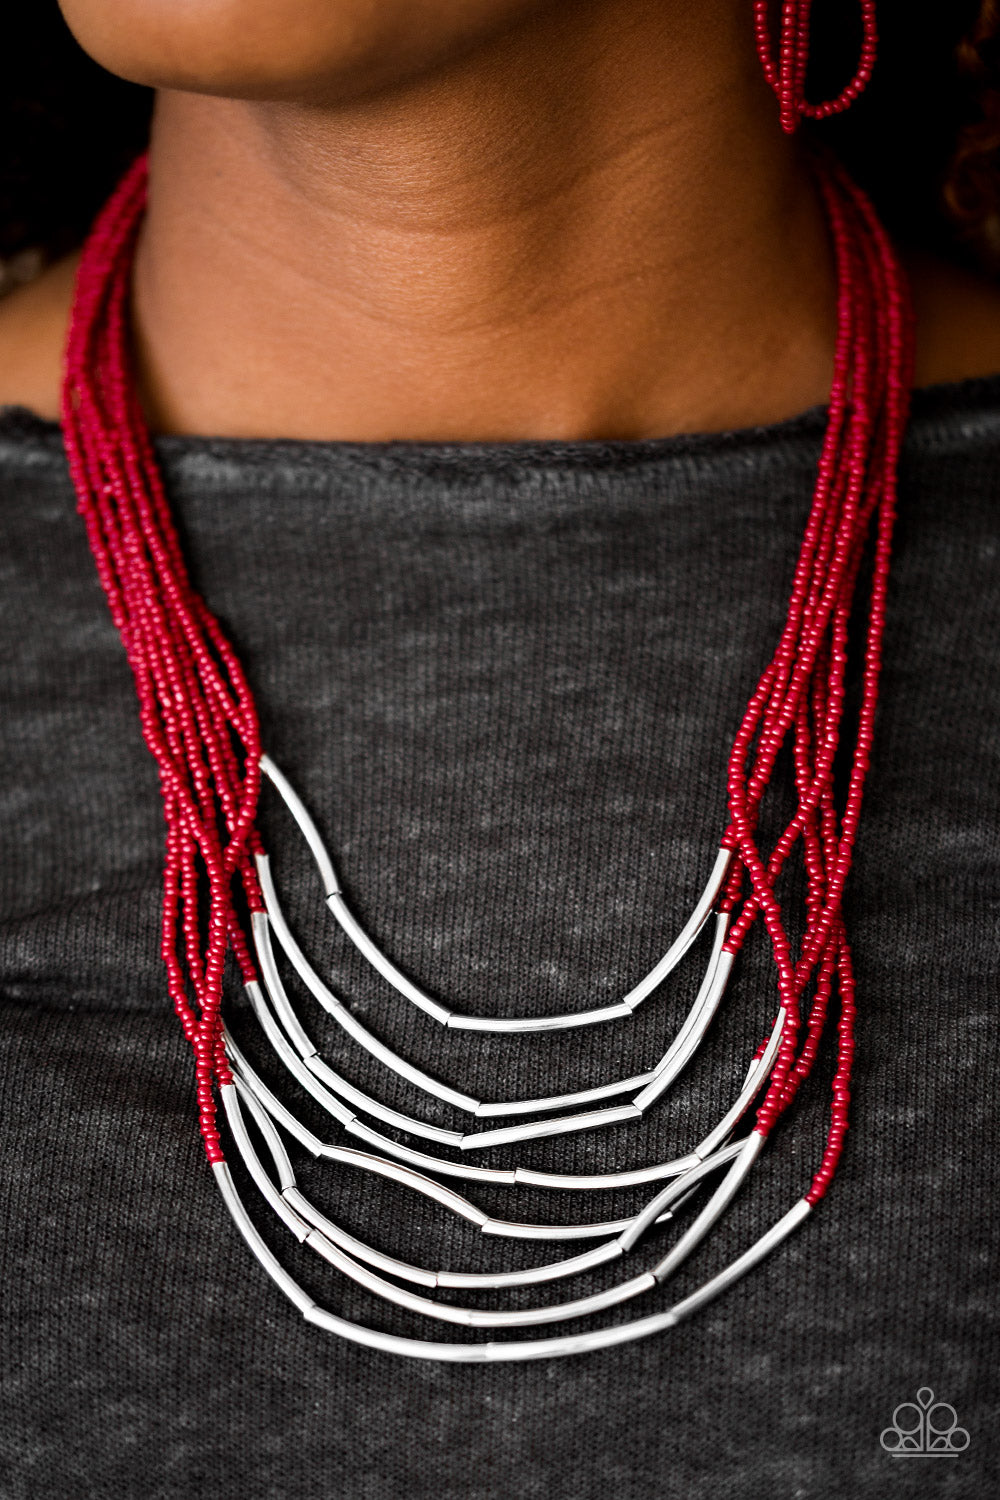 Infused with two large silver fittings, shiny red seed beads are threaded along countless strands, creating dramatic layers below the collar. Shimmery silver accents slide along the centers of the strands, adding depth and shimmer to the seasonal palette. Features an adjustable clasp closure.  Sold as one individual necklace. Includes one pair of matching earrings.   Always nickel and lead free!